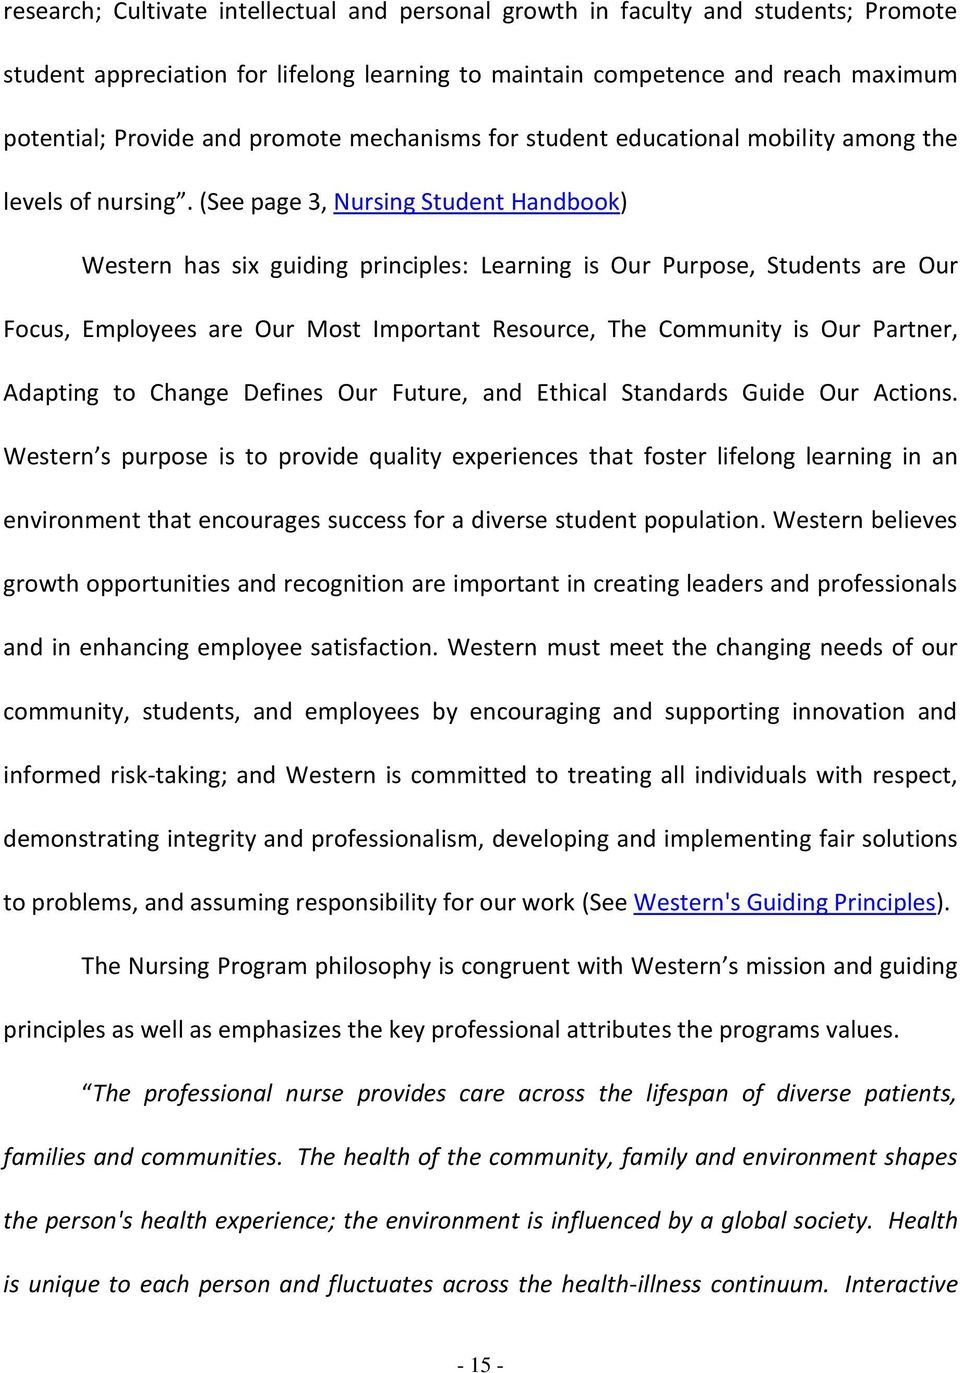 (See page 3, Nursing Student Handbook) Western has six guiding principles: Learning is Our Purpose, Students are Our Focus, Employees are Our Most Important Resource, The Community is Our Partner,